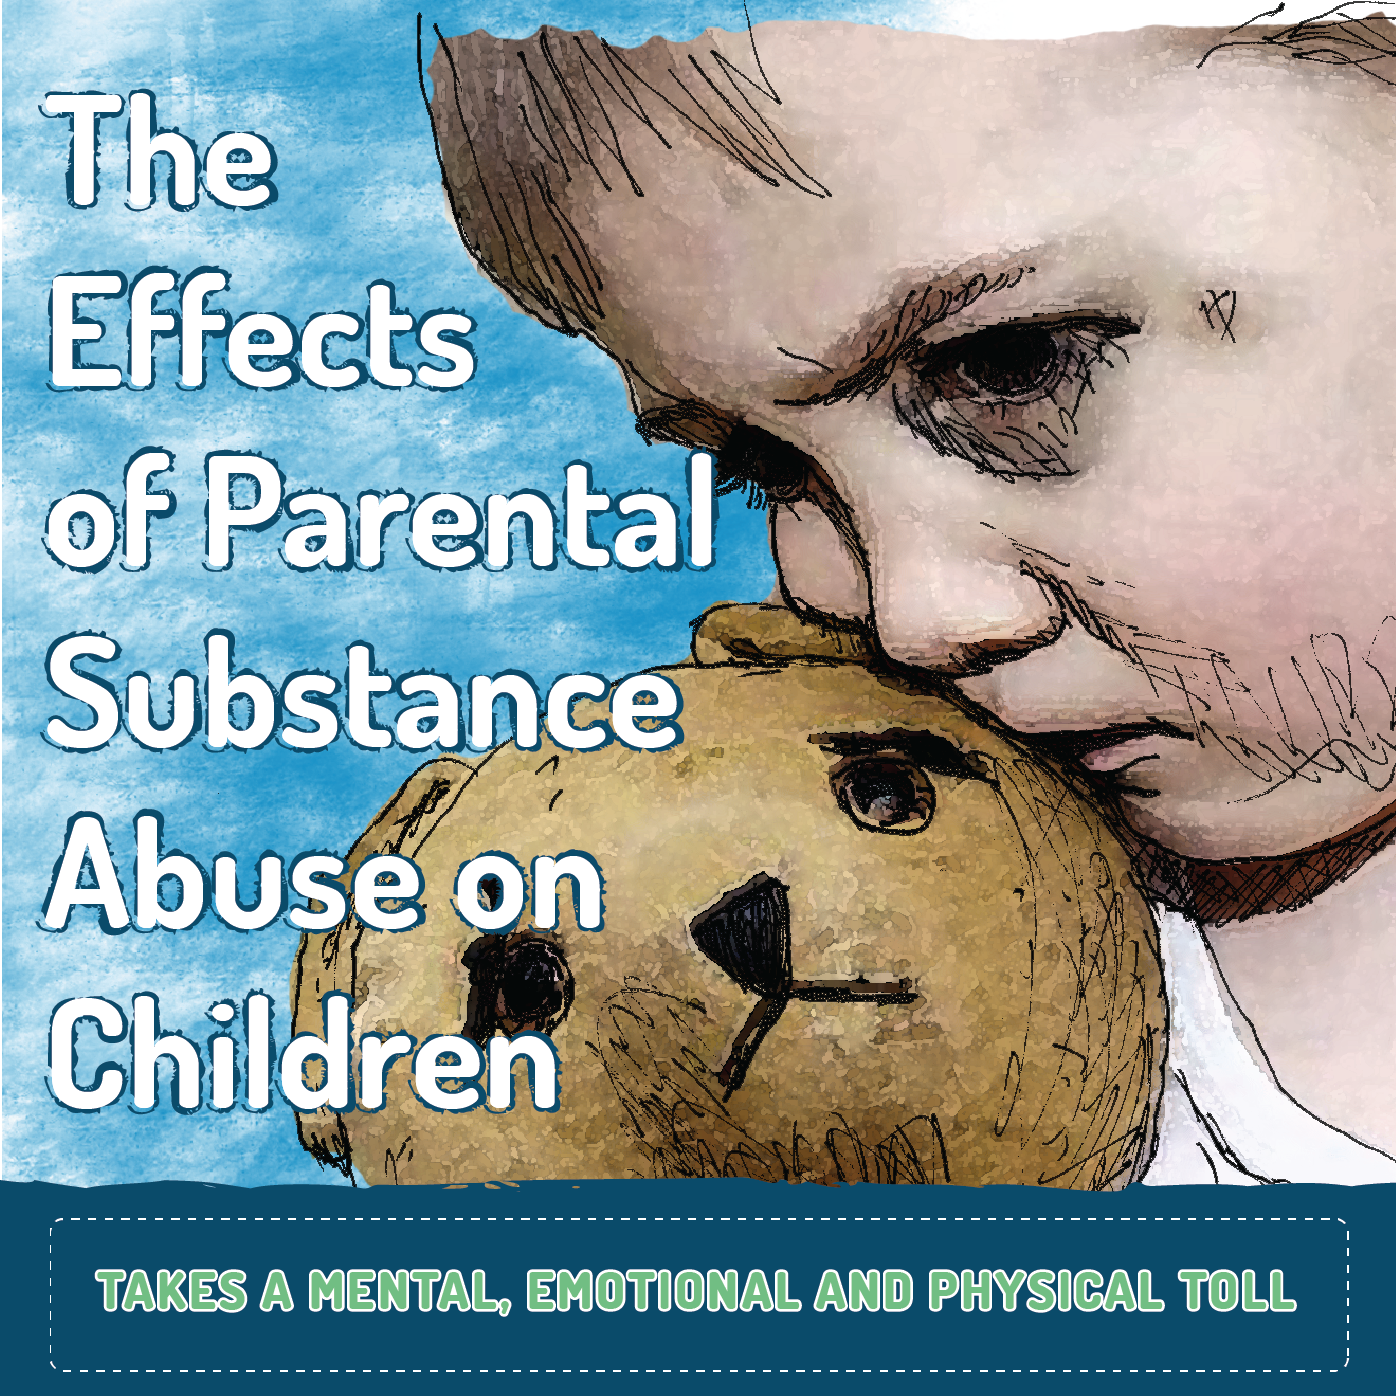 The Effects of Parental Substance Abuse on Children http